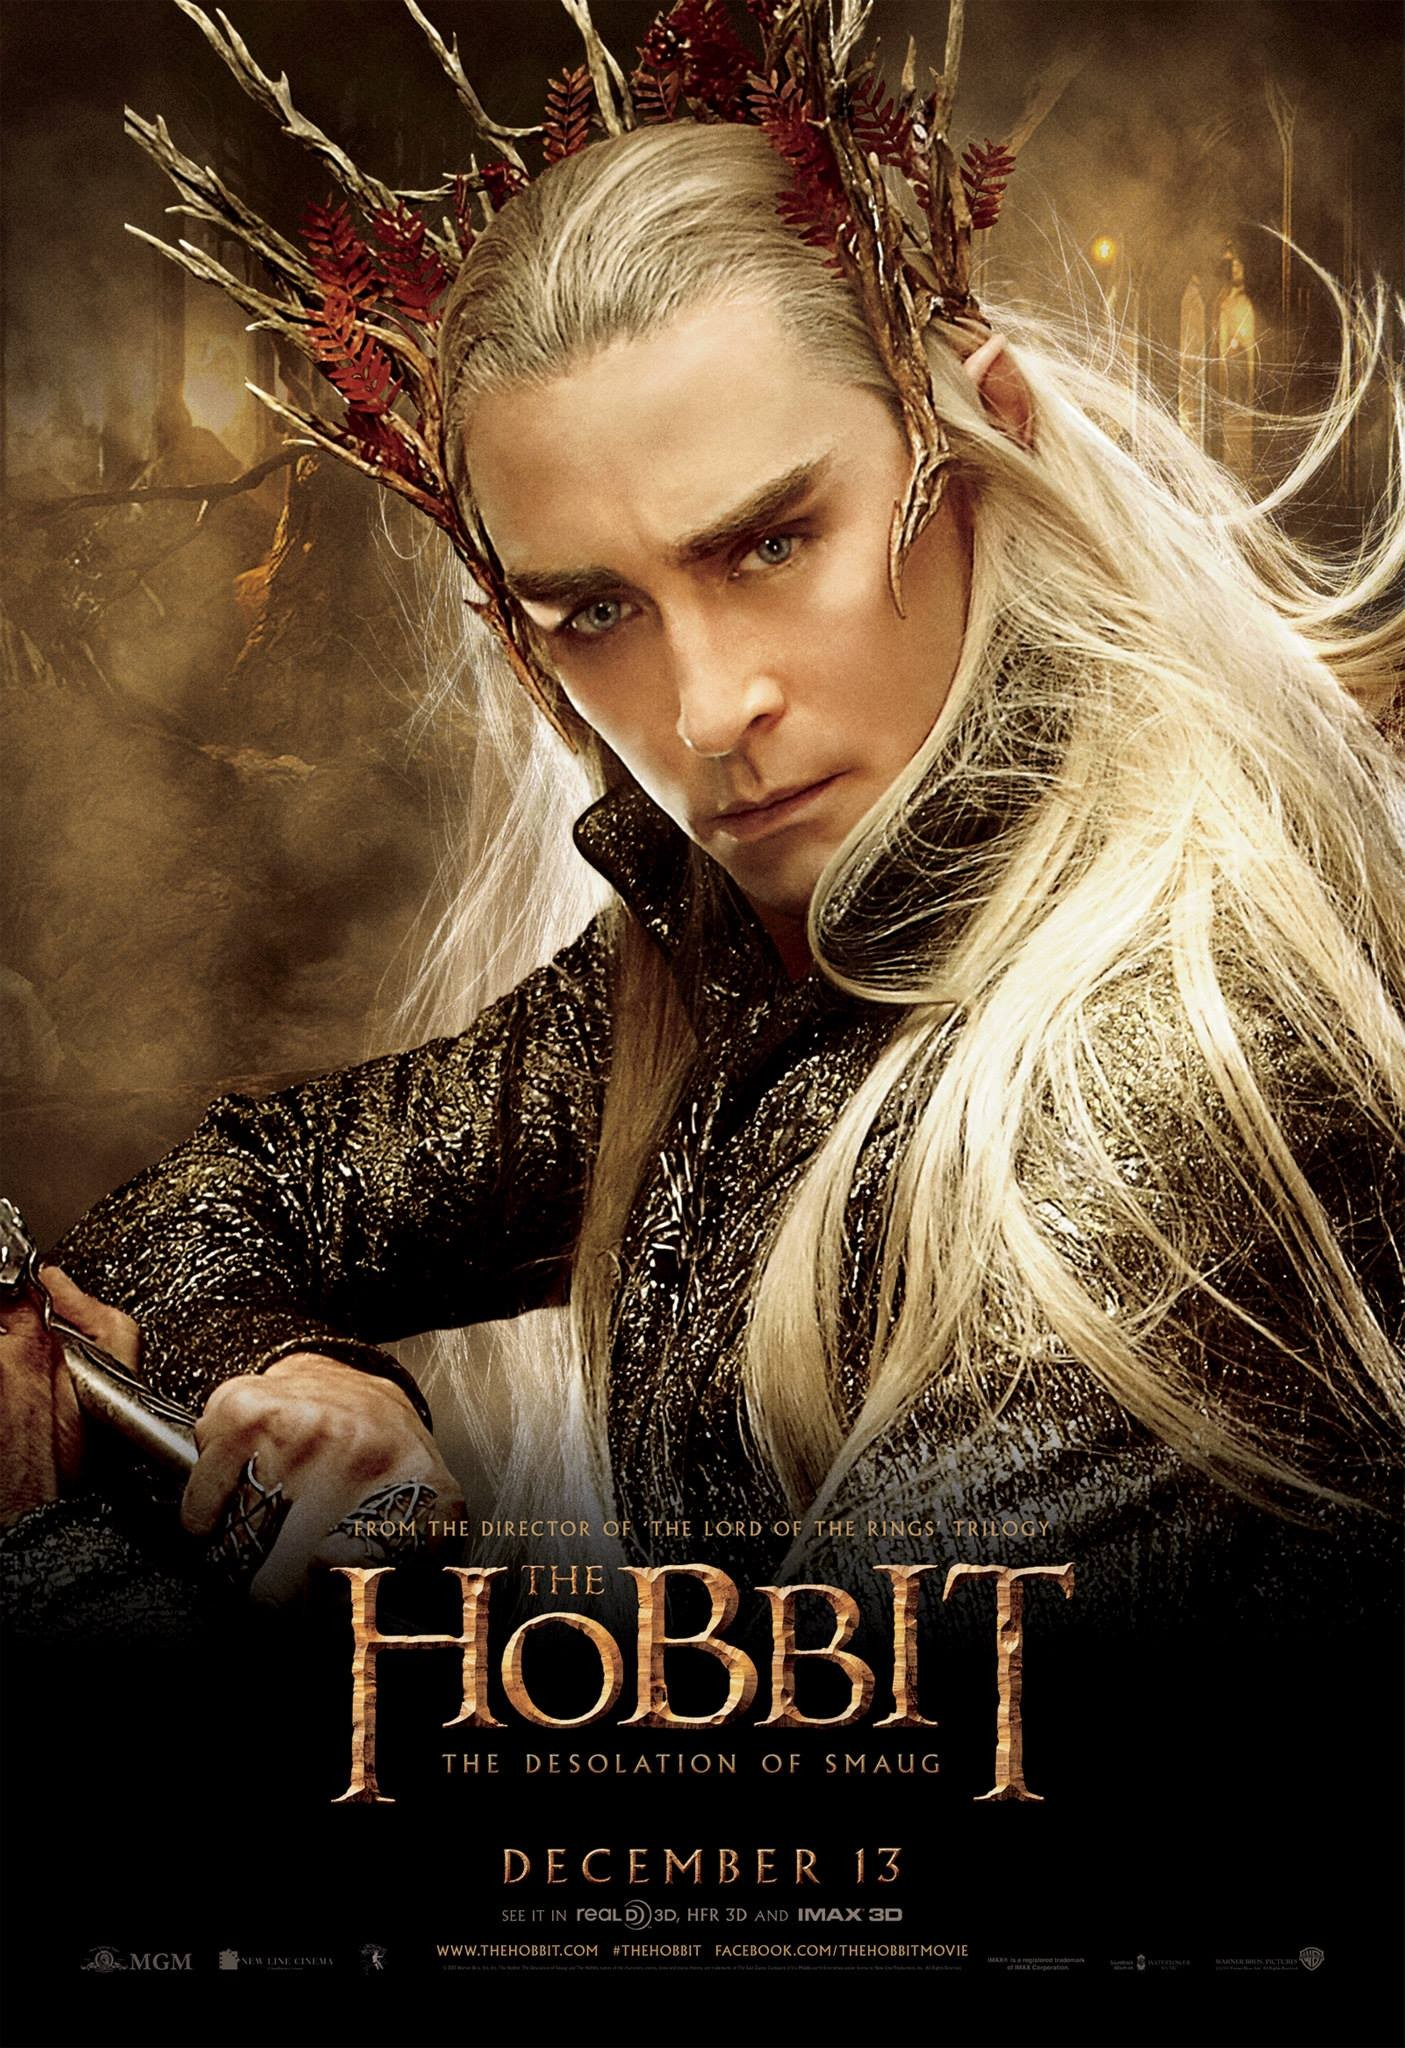 The Hobbit The Desolation of Smaug-Official Poster Banner PROMO POSTER XXLG-04NOVEMBRO2013-07